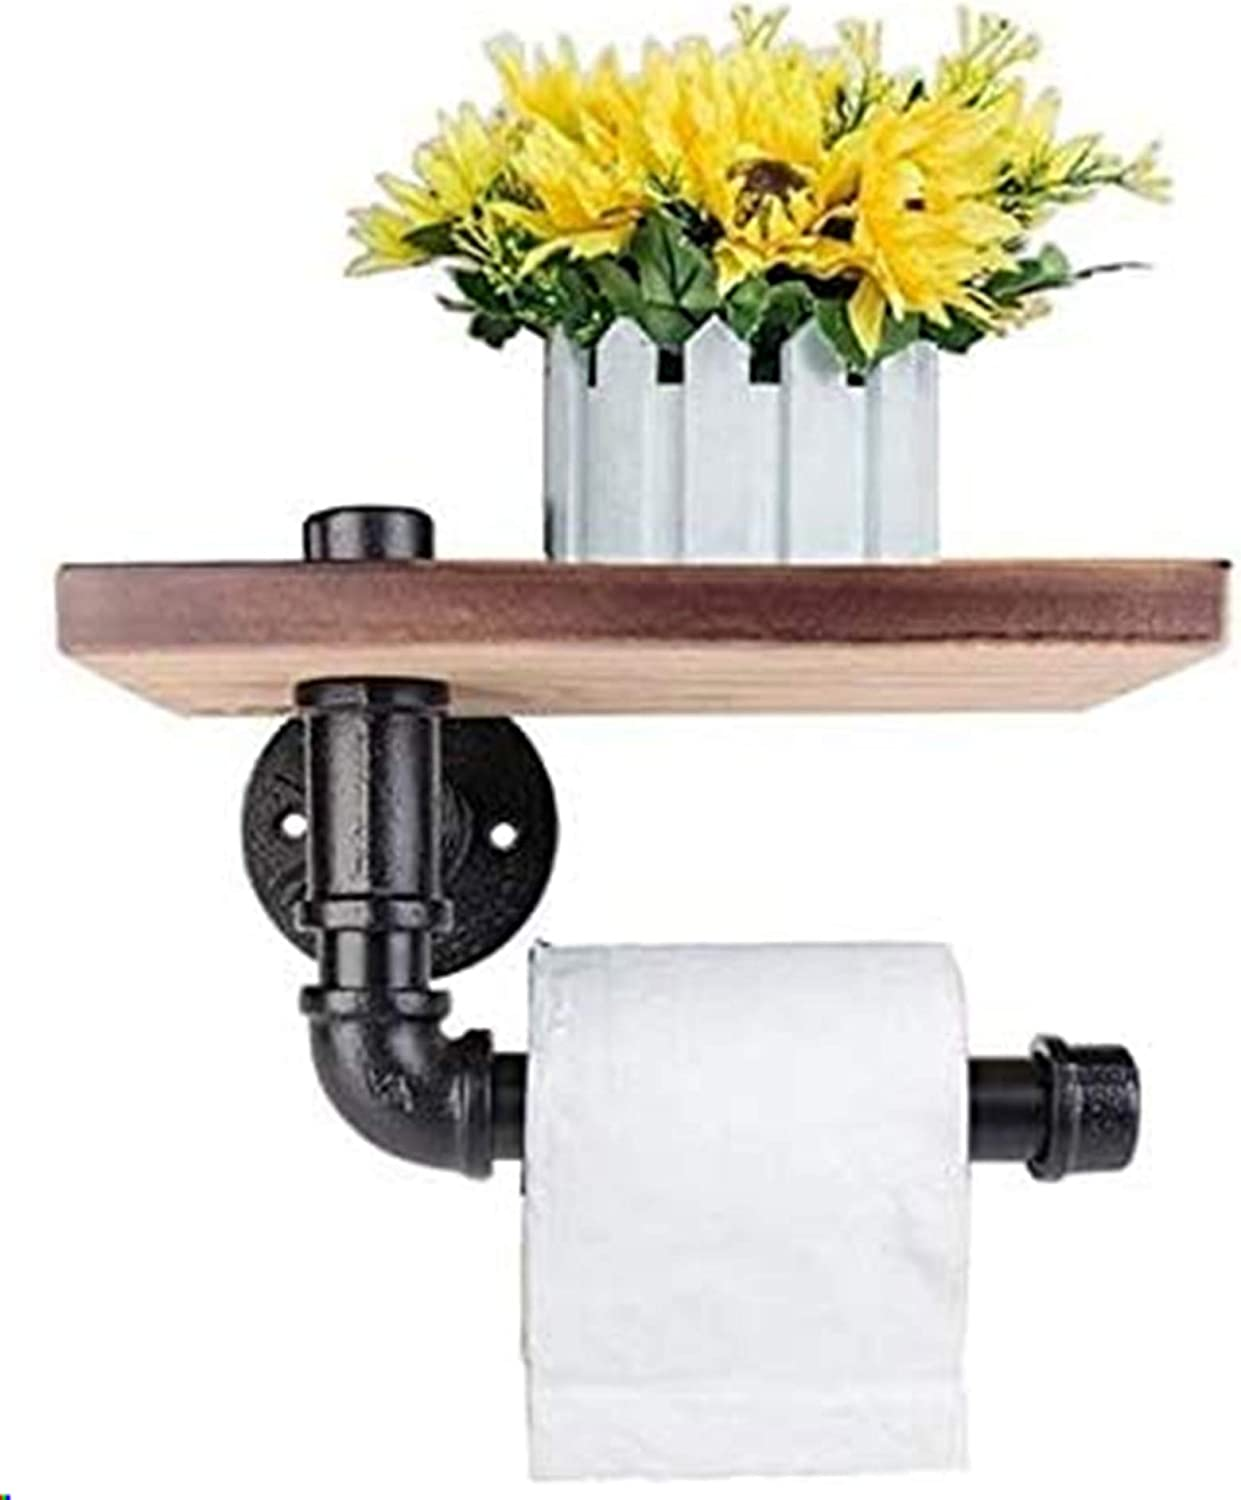 Toilet Roll Holder Multifunction Retro-styled Iron Pipe Wall Mount Paper Towel Rack with Wooden Storage Shelf Retro Bathroom Rack